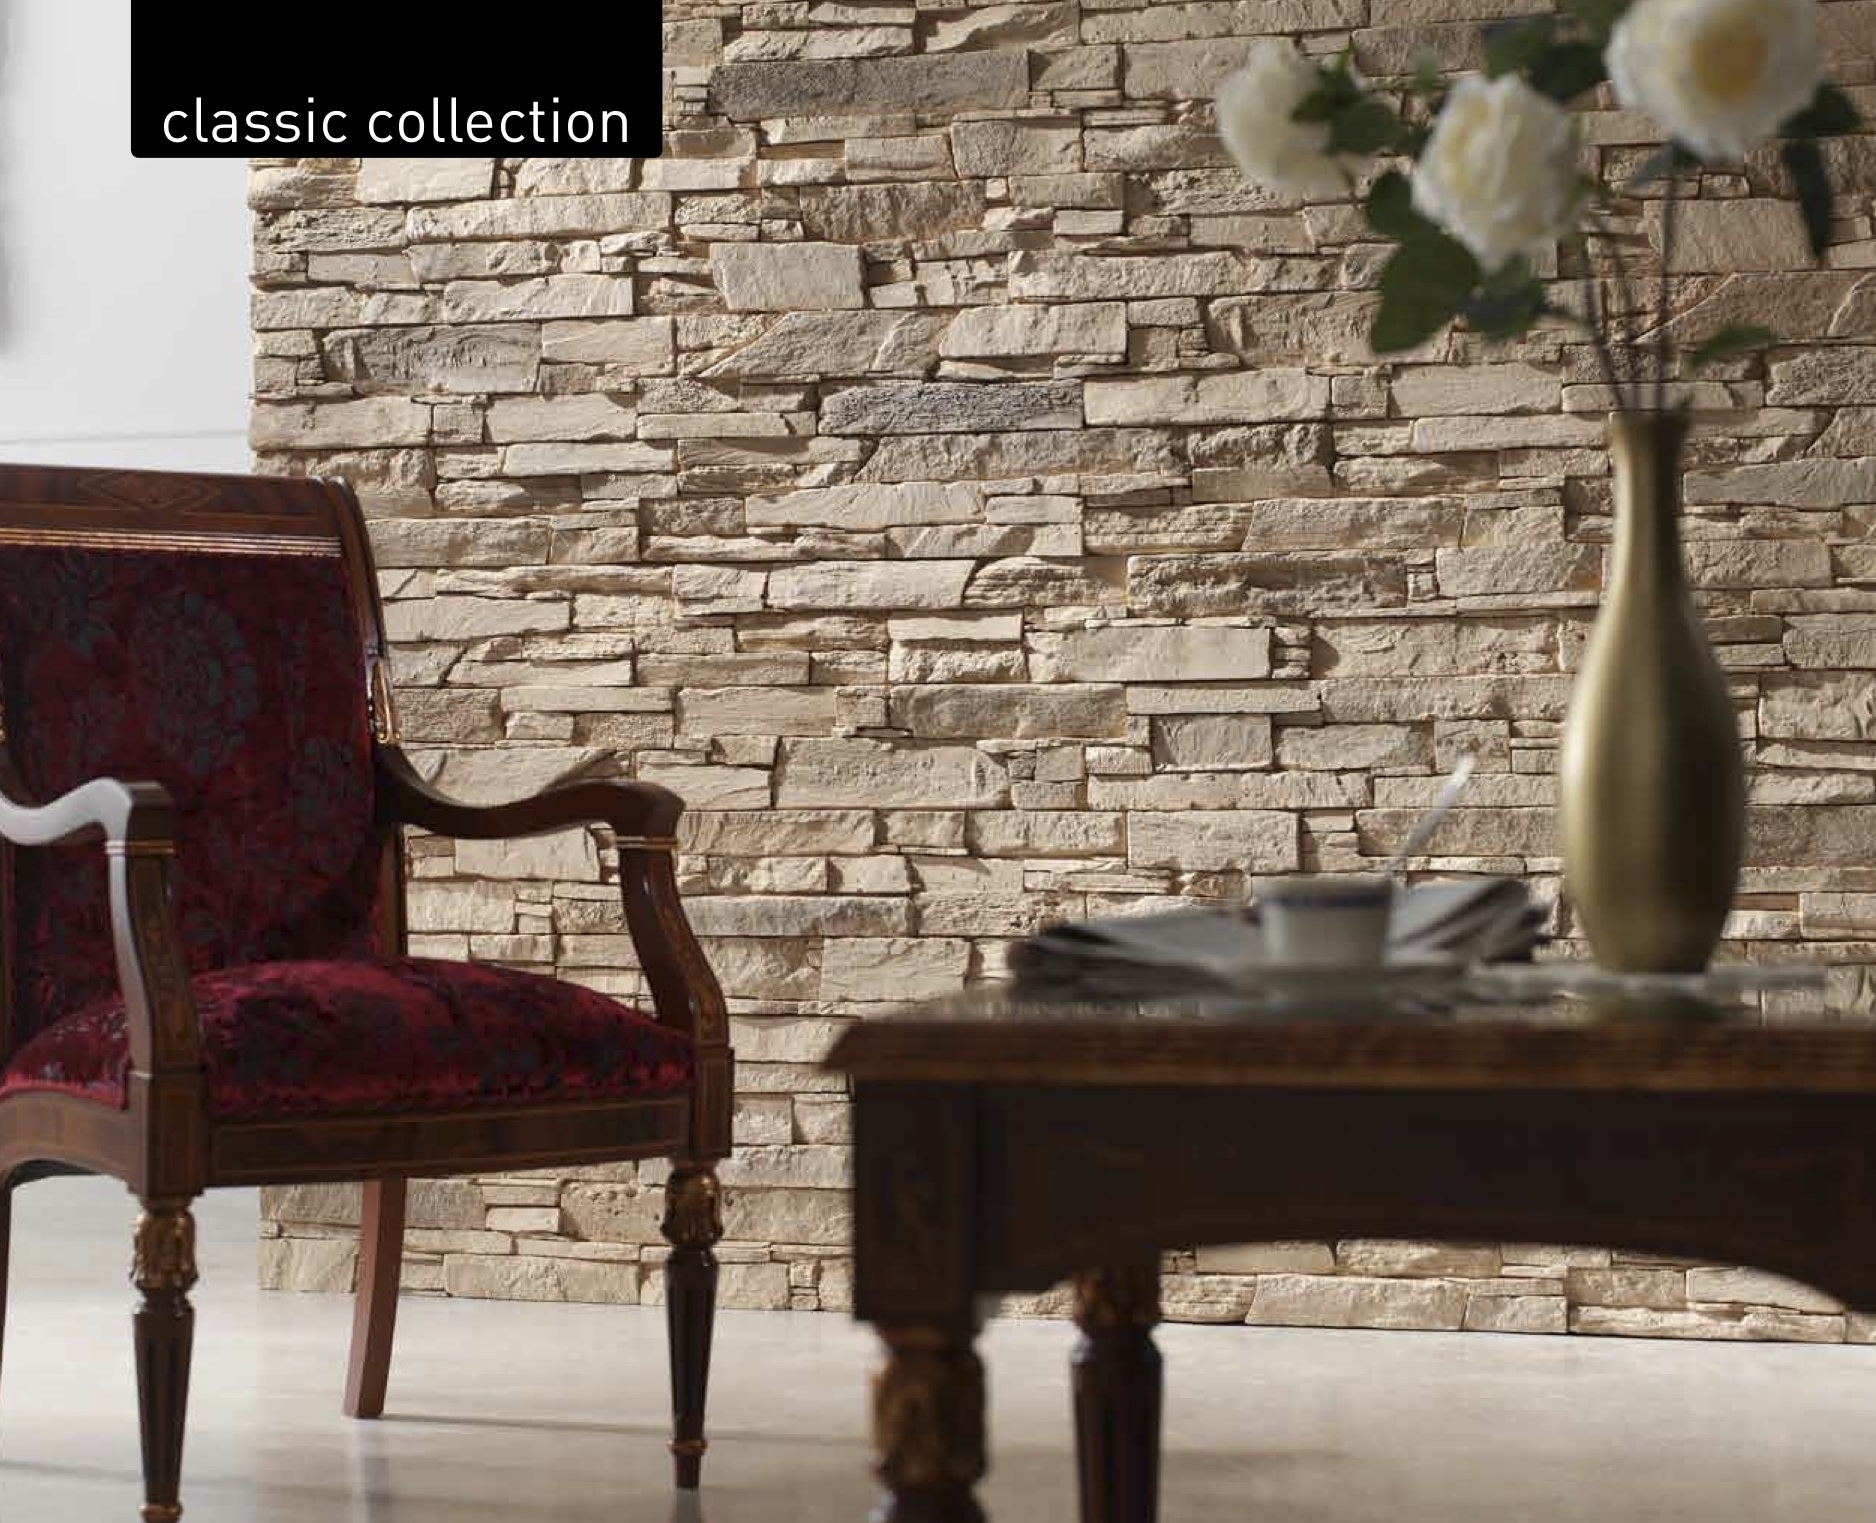 Pizarra Andes Slate Wall Panels – Dreamwall wallcoverings with a ...